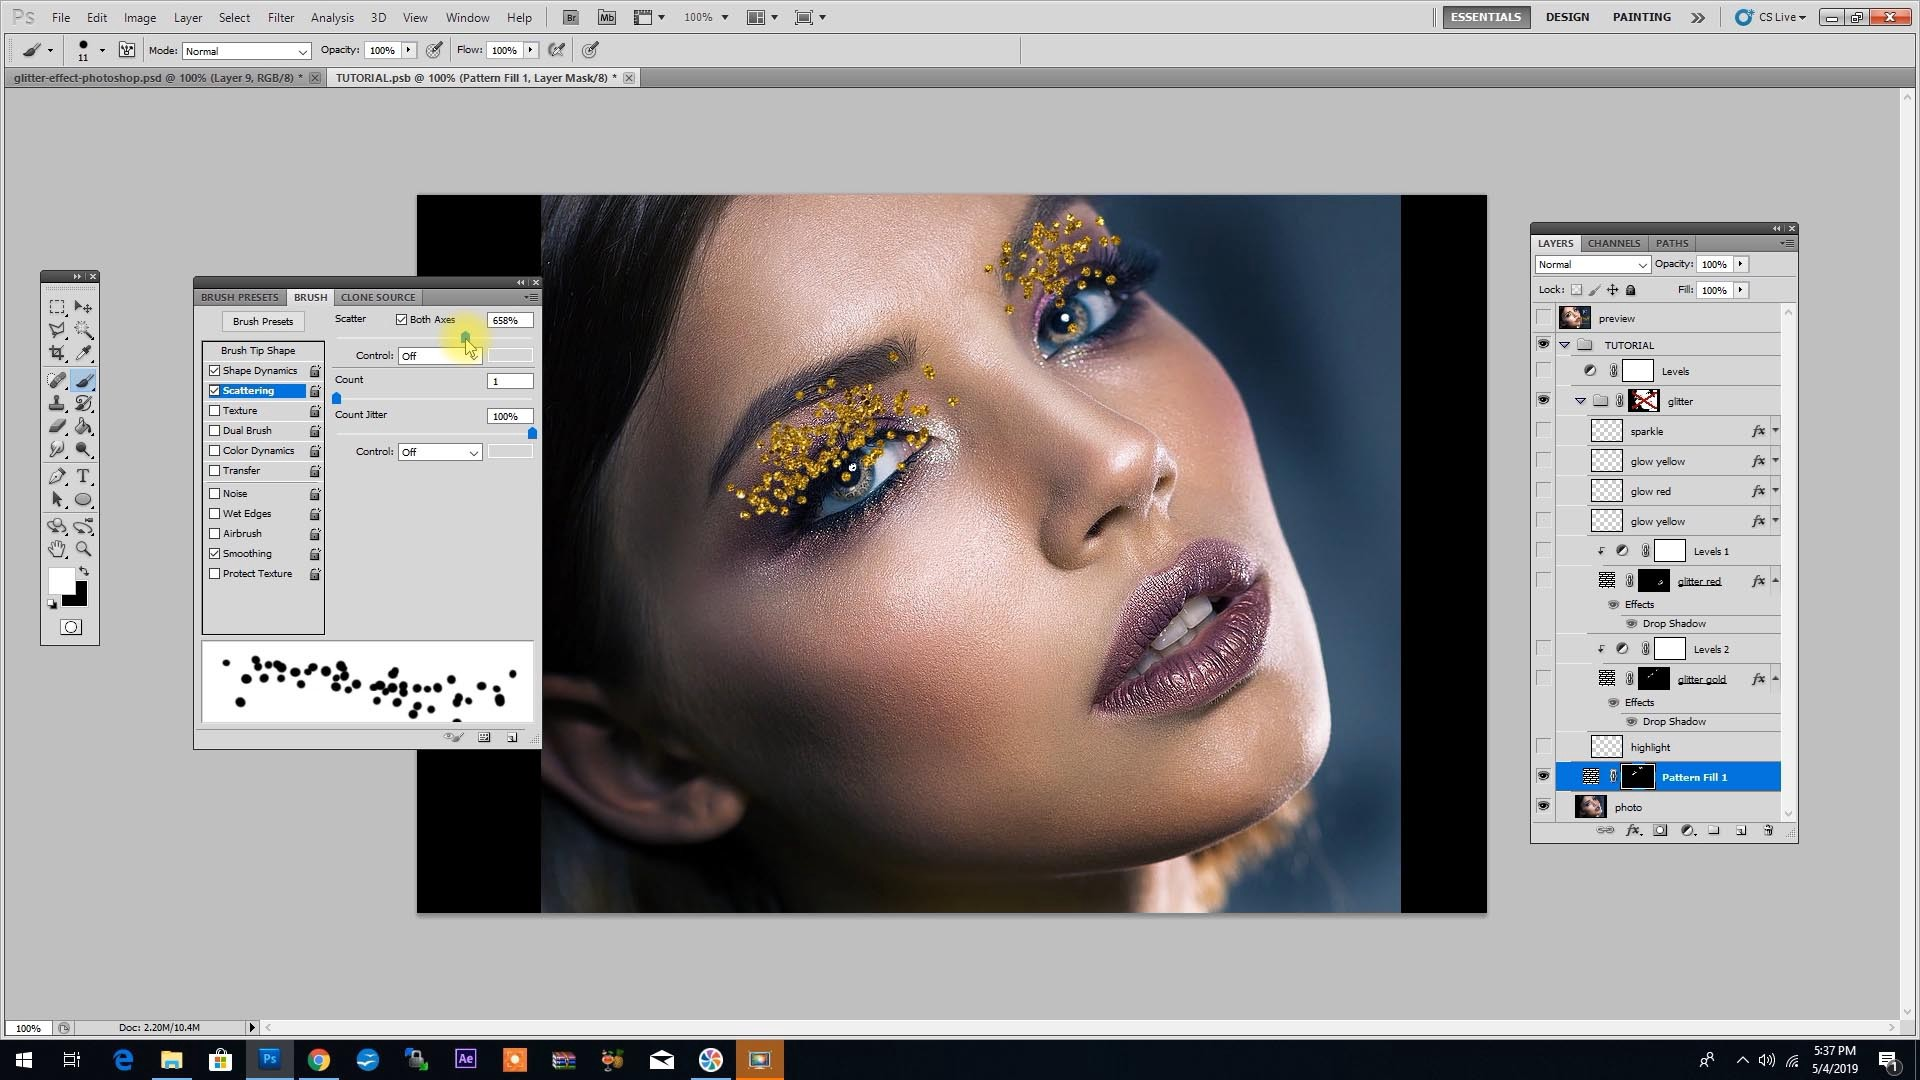 Photoshop Tutorial: Fashion Photo Editing in Under 6 Minutes